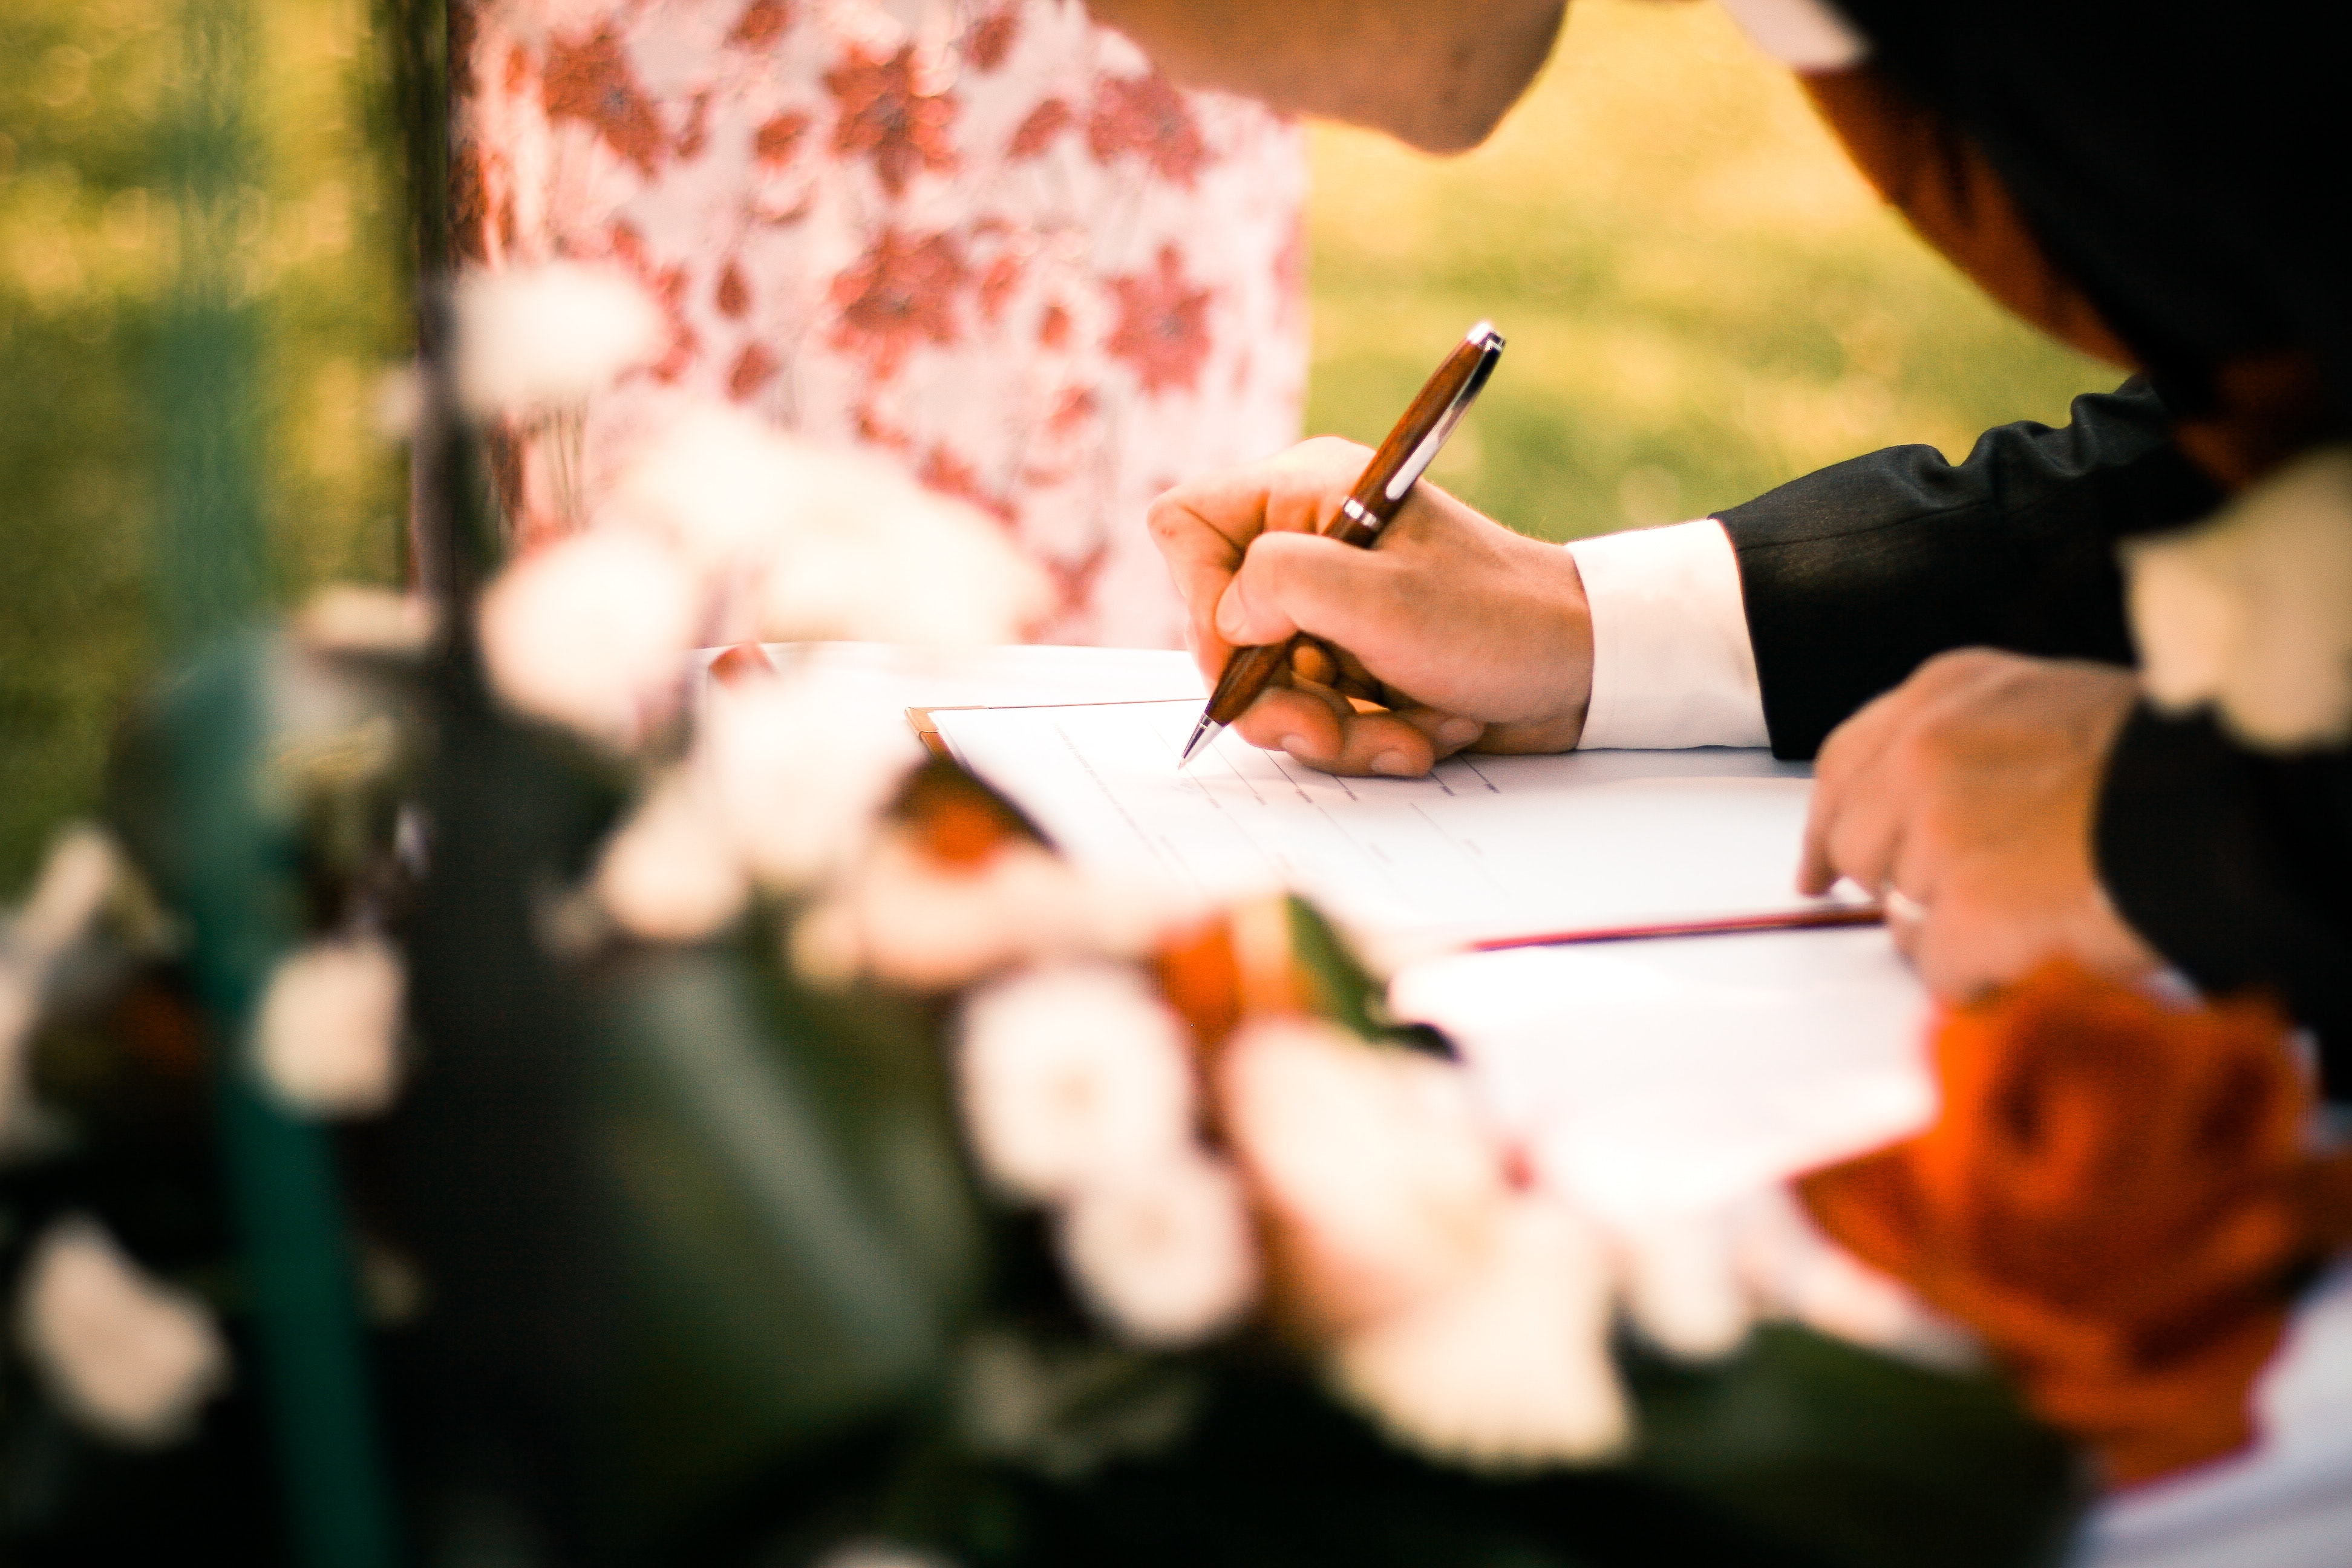 Person Drawing on White Paper, Contract, Depth of field, Flowers, Man, HQ Photo